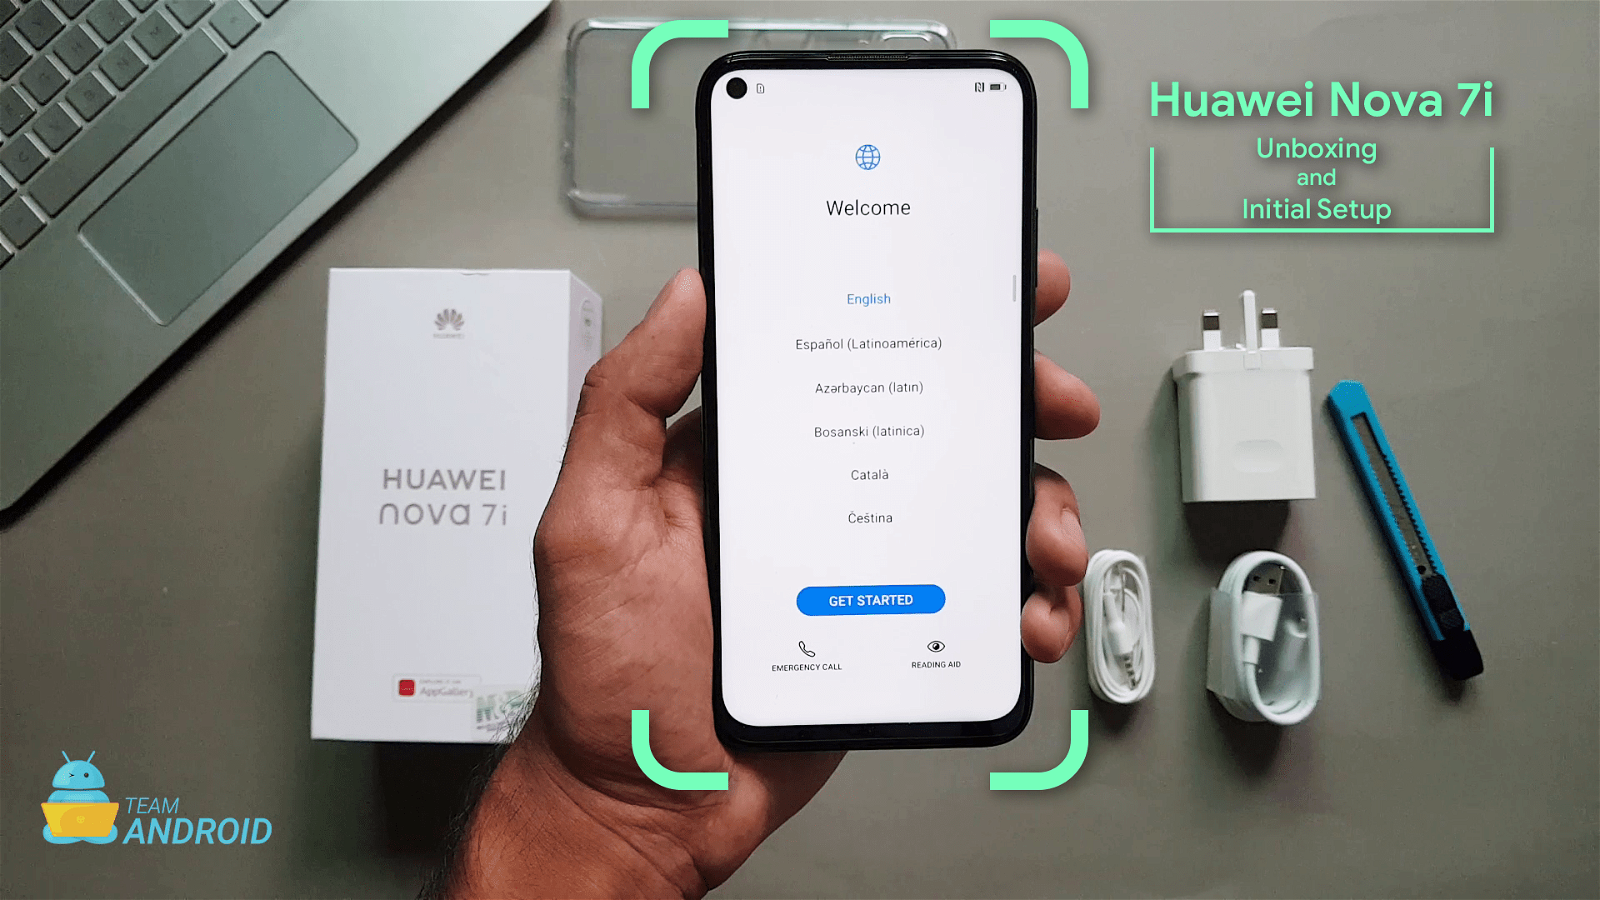 Huawei Nova 7i Unboxing and First Look